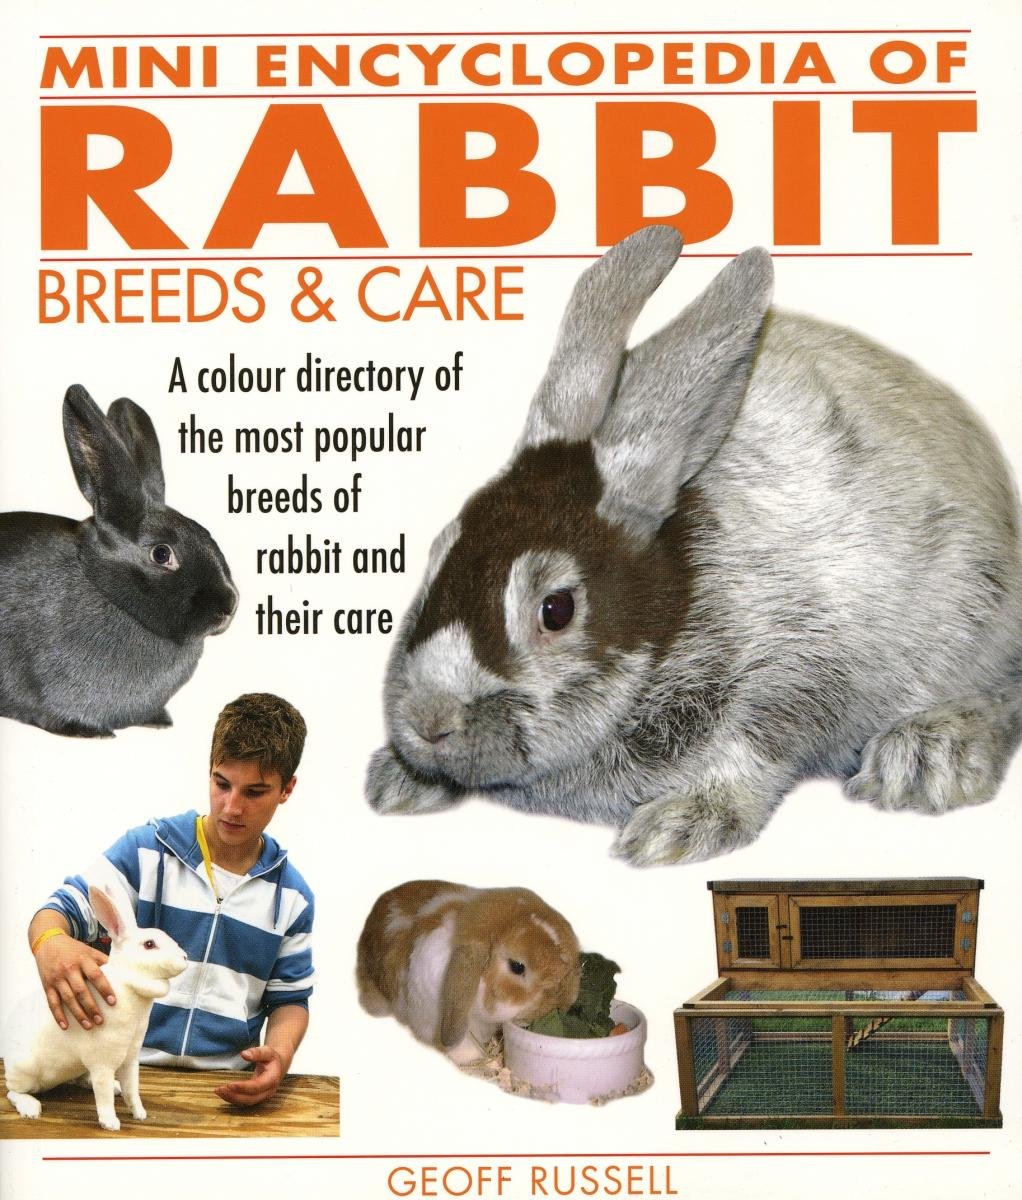 Rabbit Breeds & Care Mini Encyclopedia